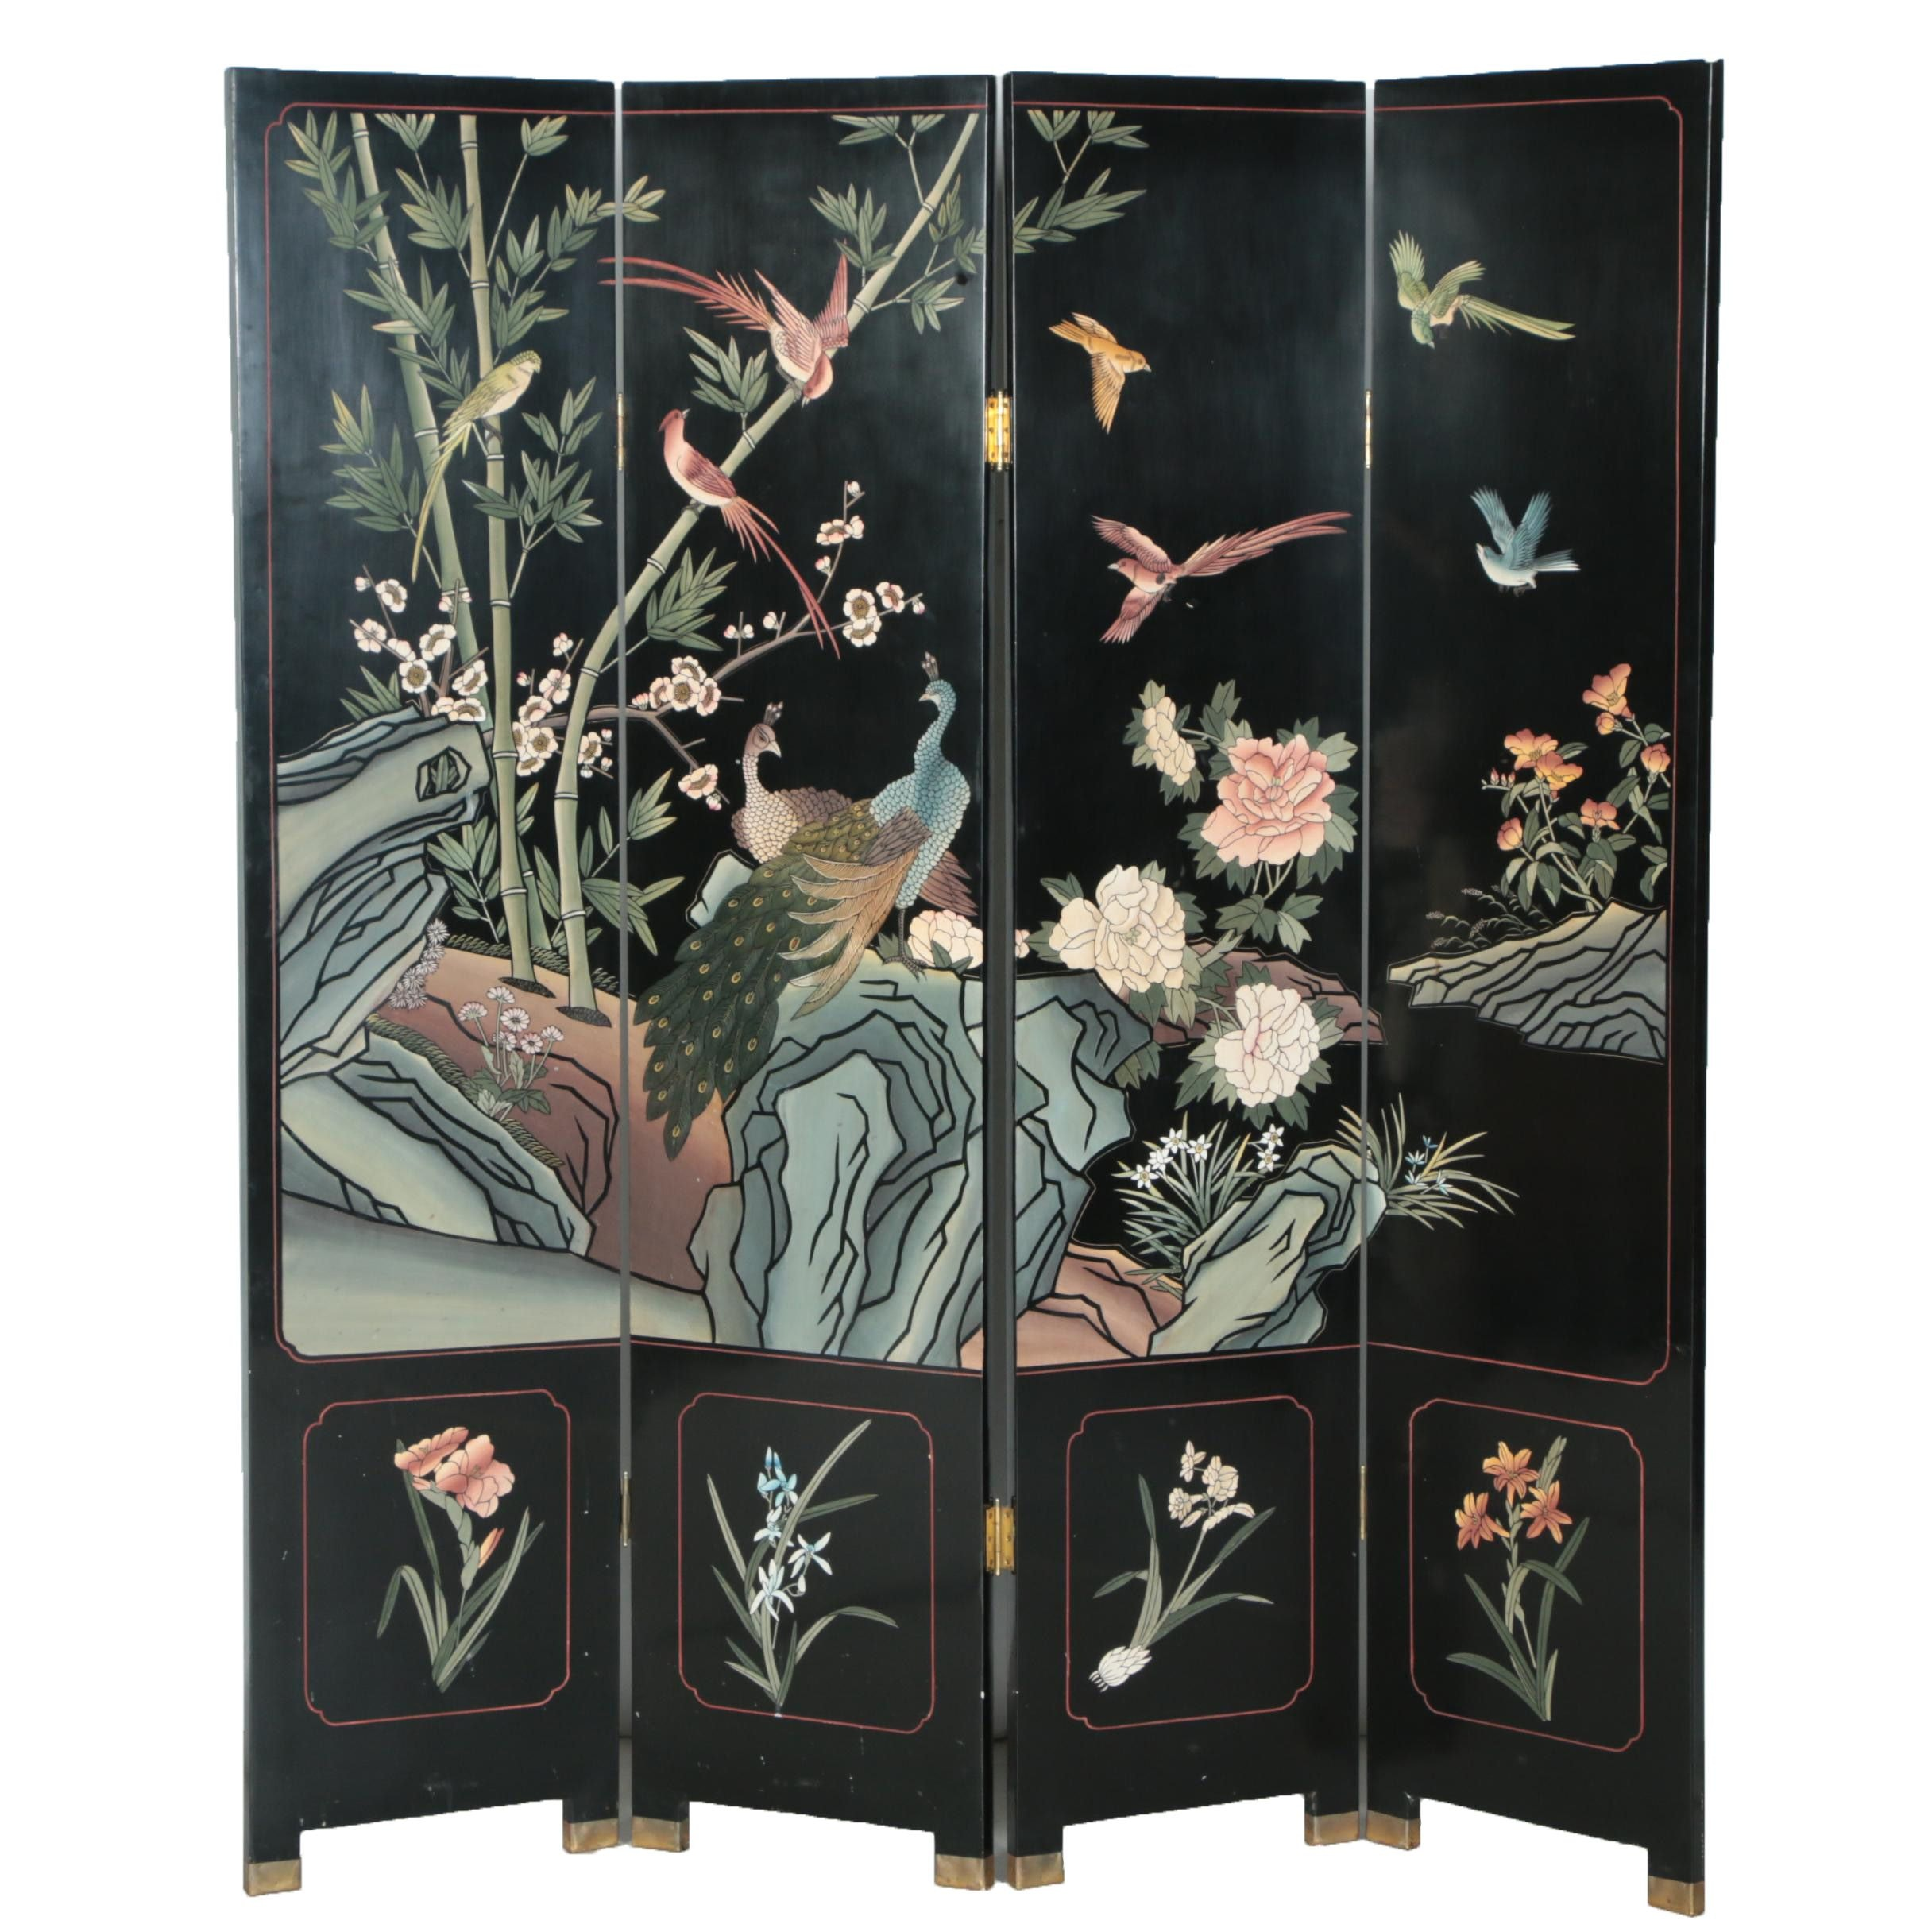 Vintage Chinese Coromandel Lacquer Wooden Screen